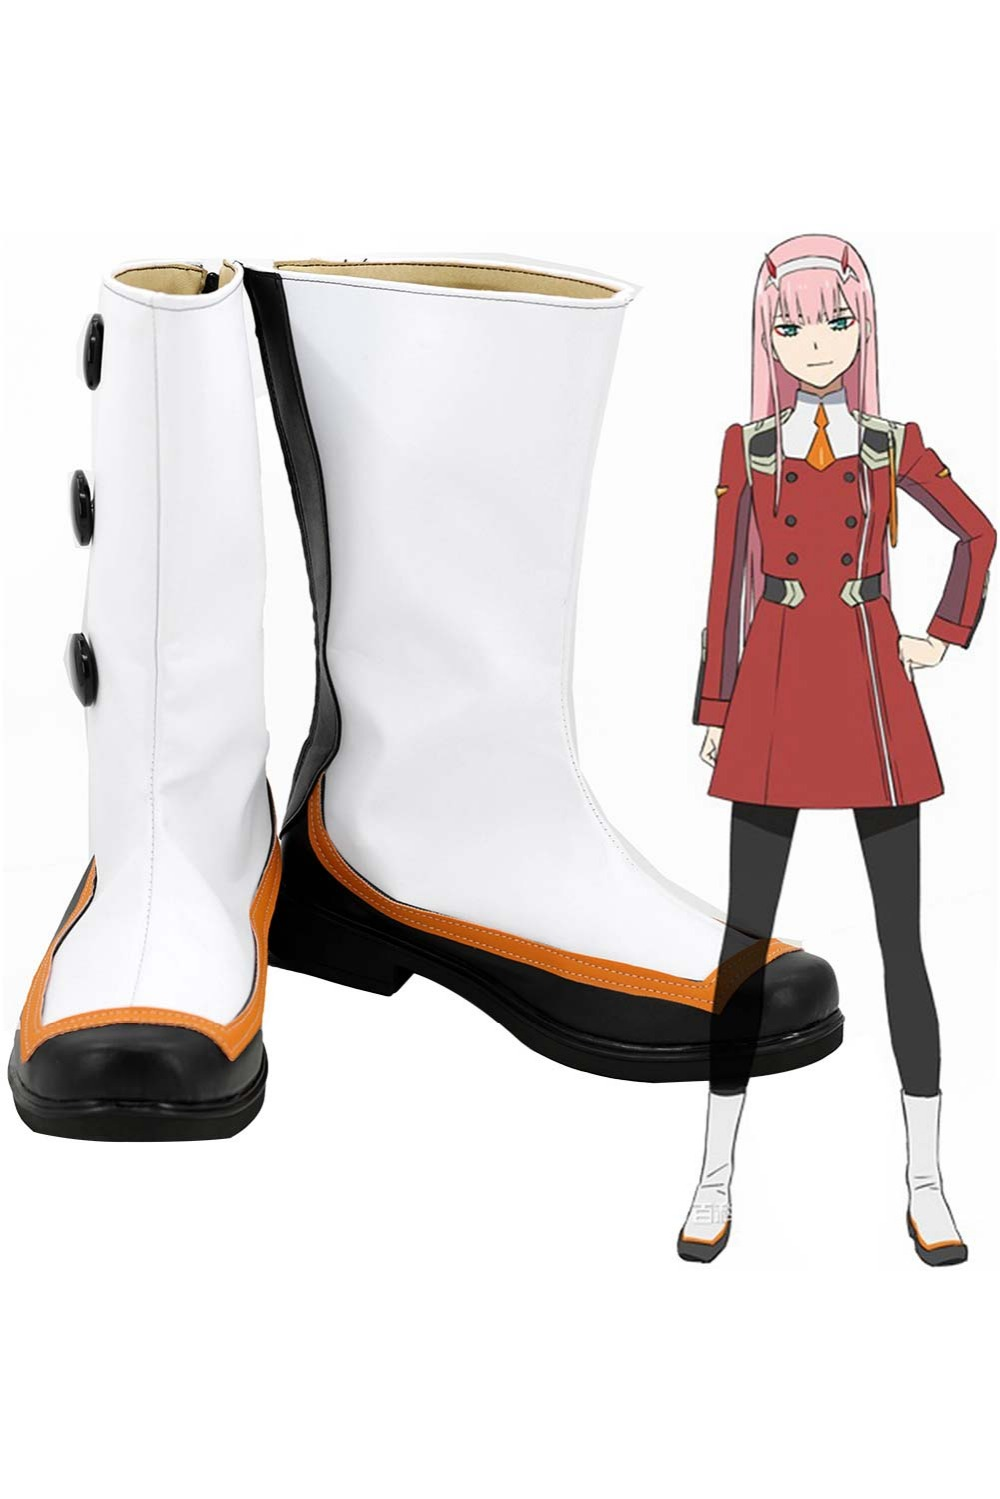 DARLING in the FRANXX Zero Two Code:002 Cosplay Boots 02 Cosplay Shoes Zero Two 02 Accessories